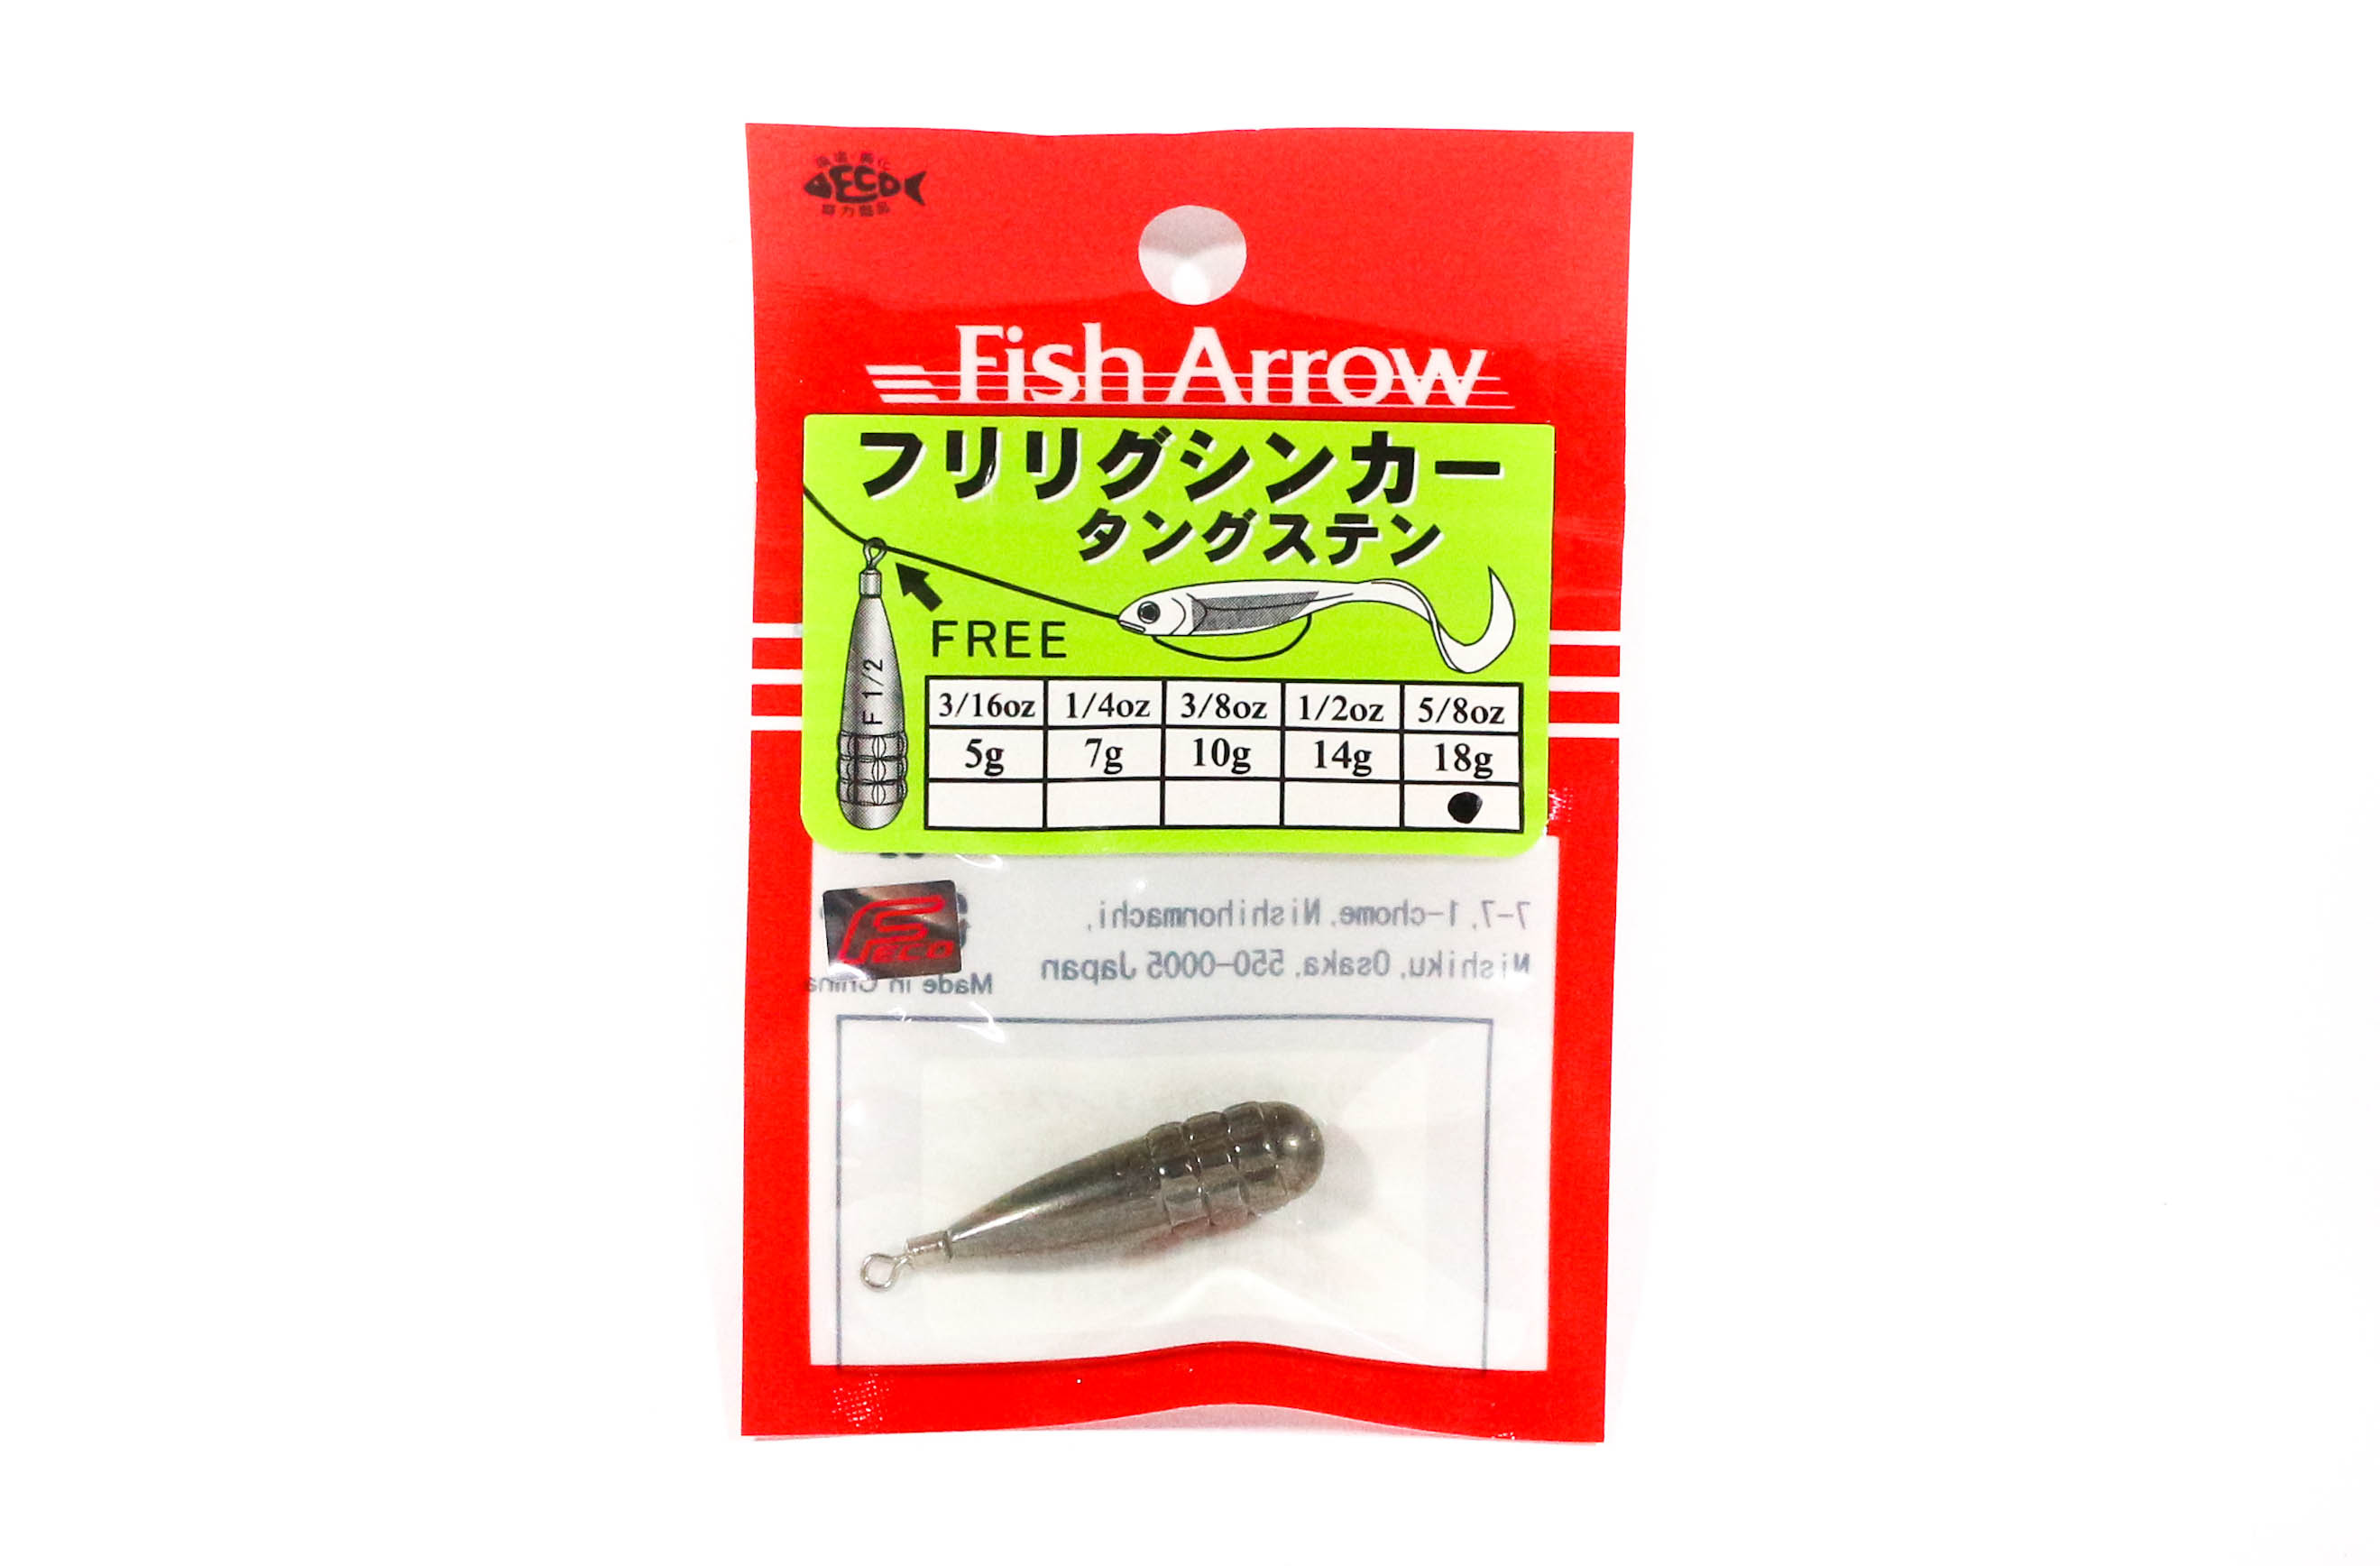 Fish Arrow Free Rig Tungster Sinker 5/8 oz 1 piece per pack (2091)